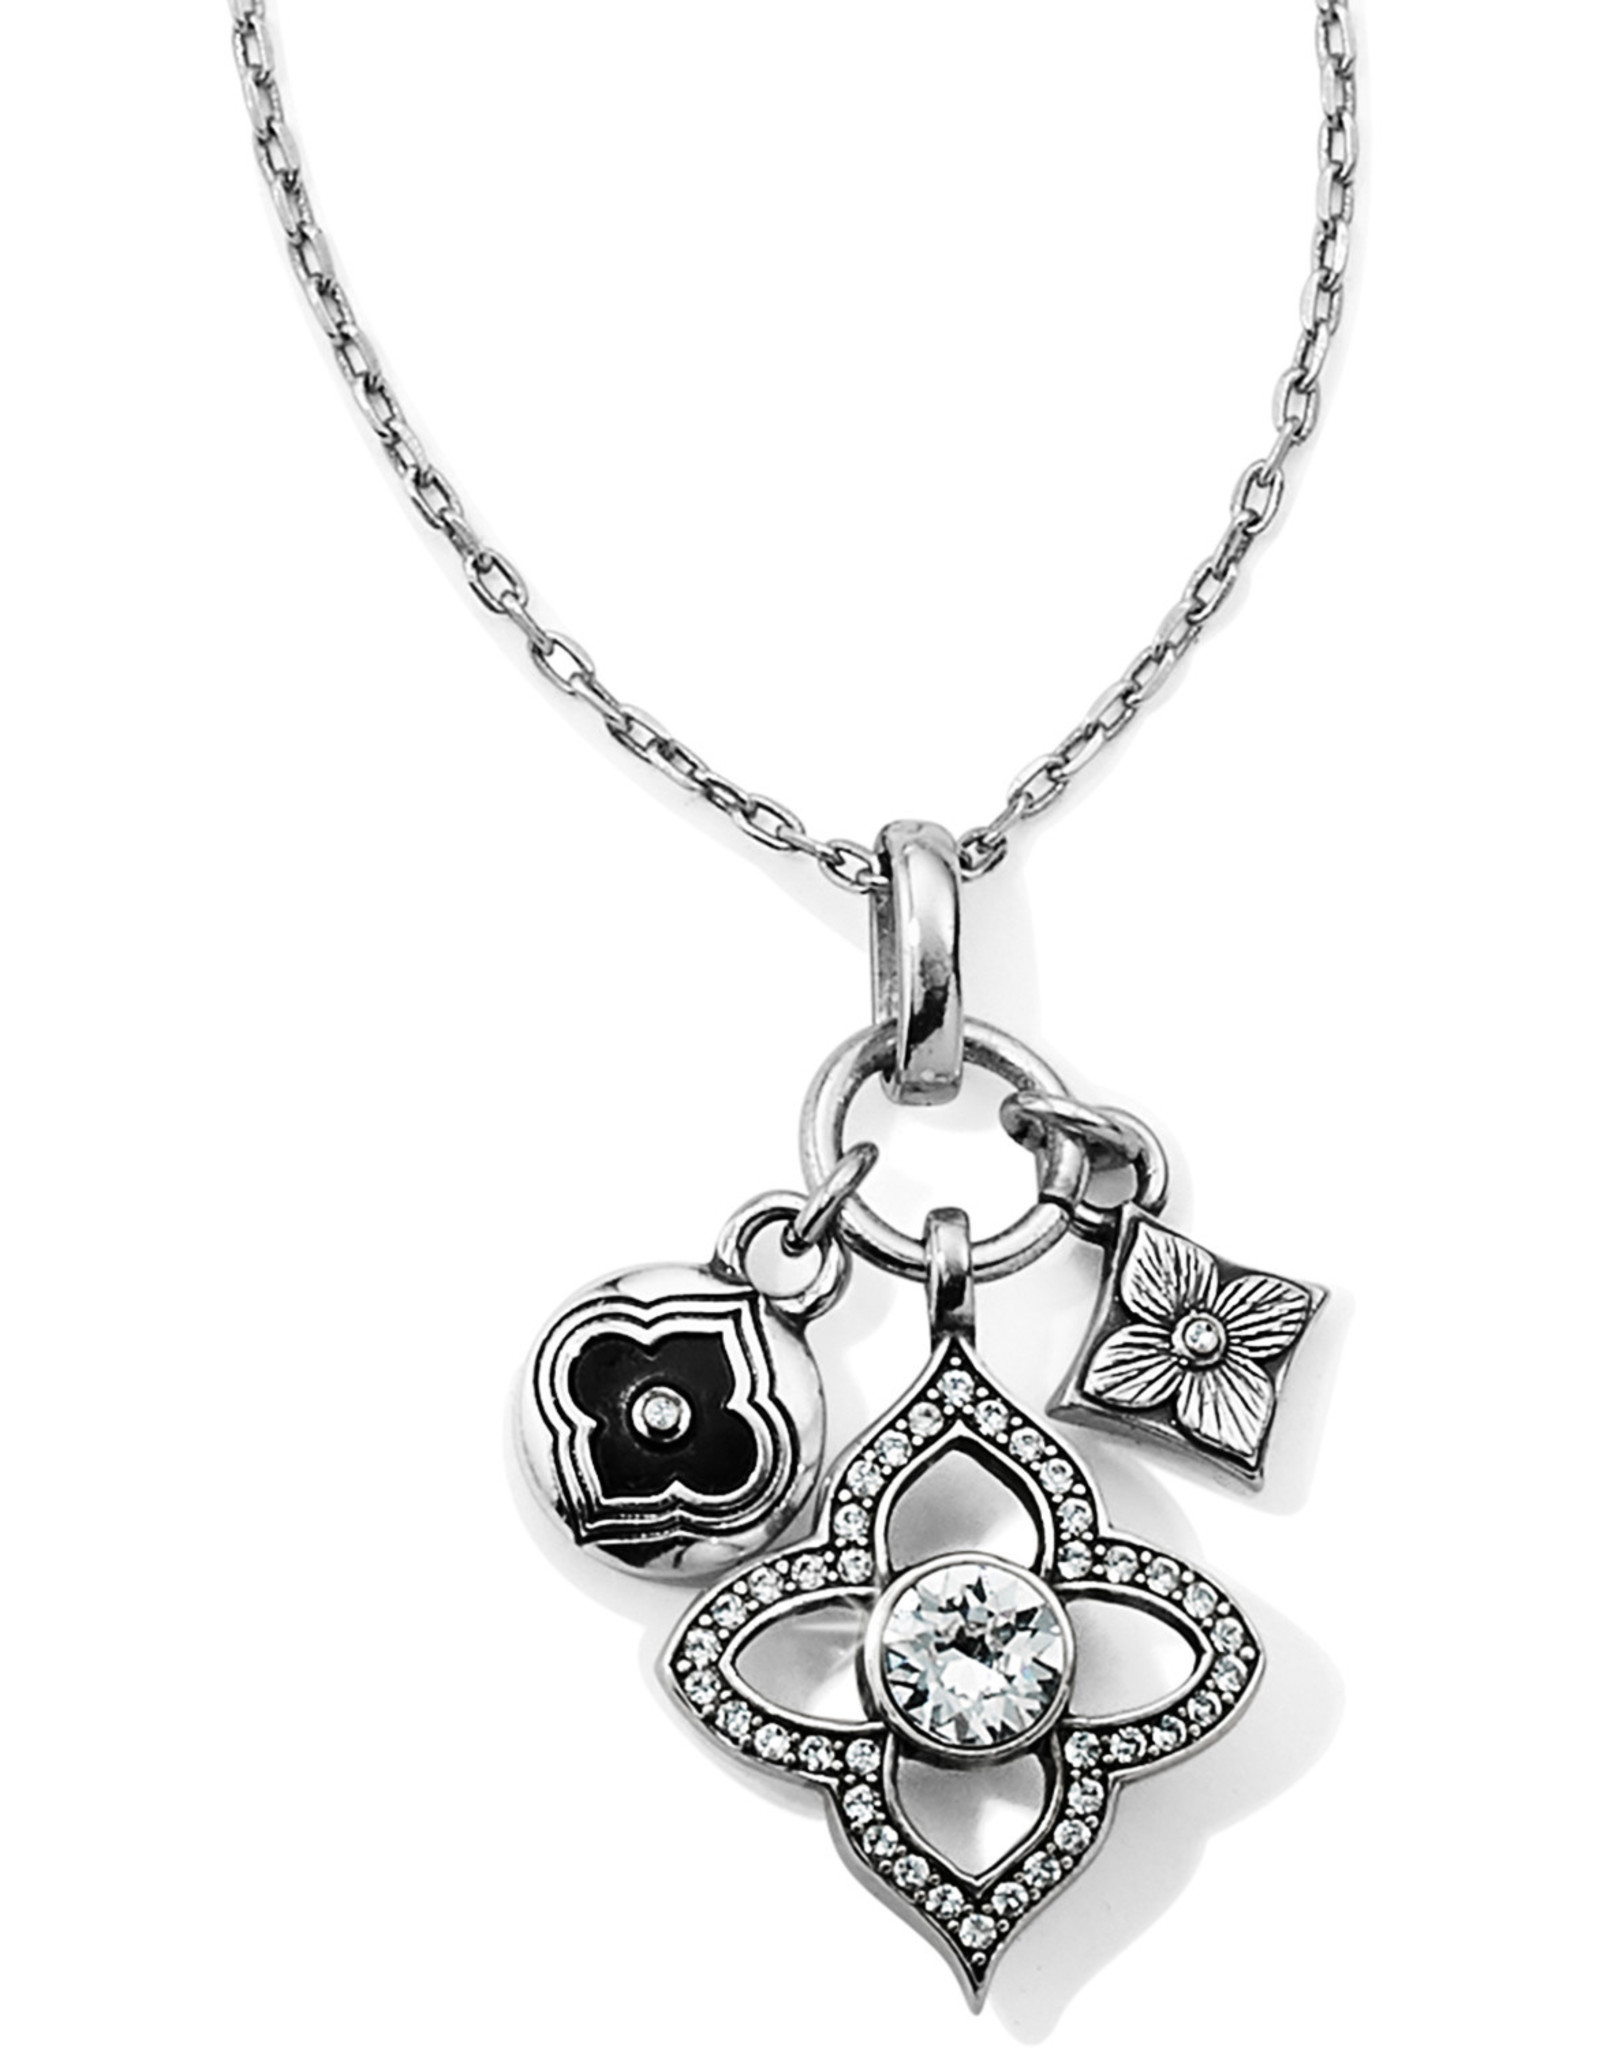 Brighton Brighton Necklace Toledo Collective Charm